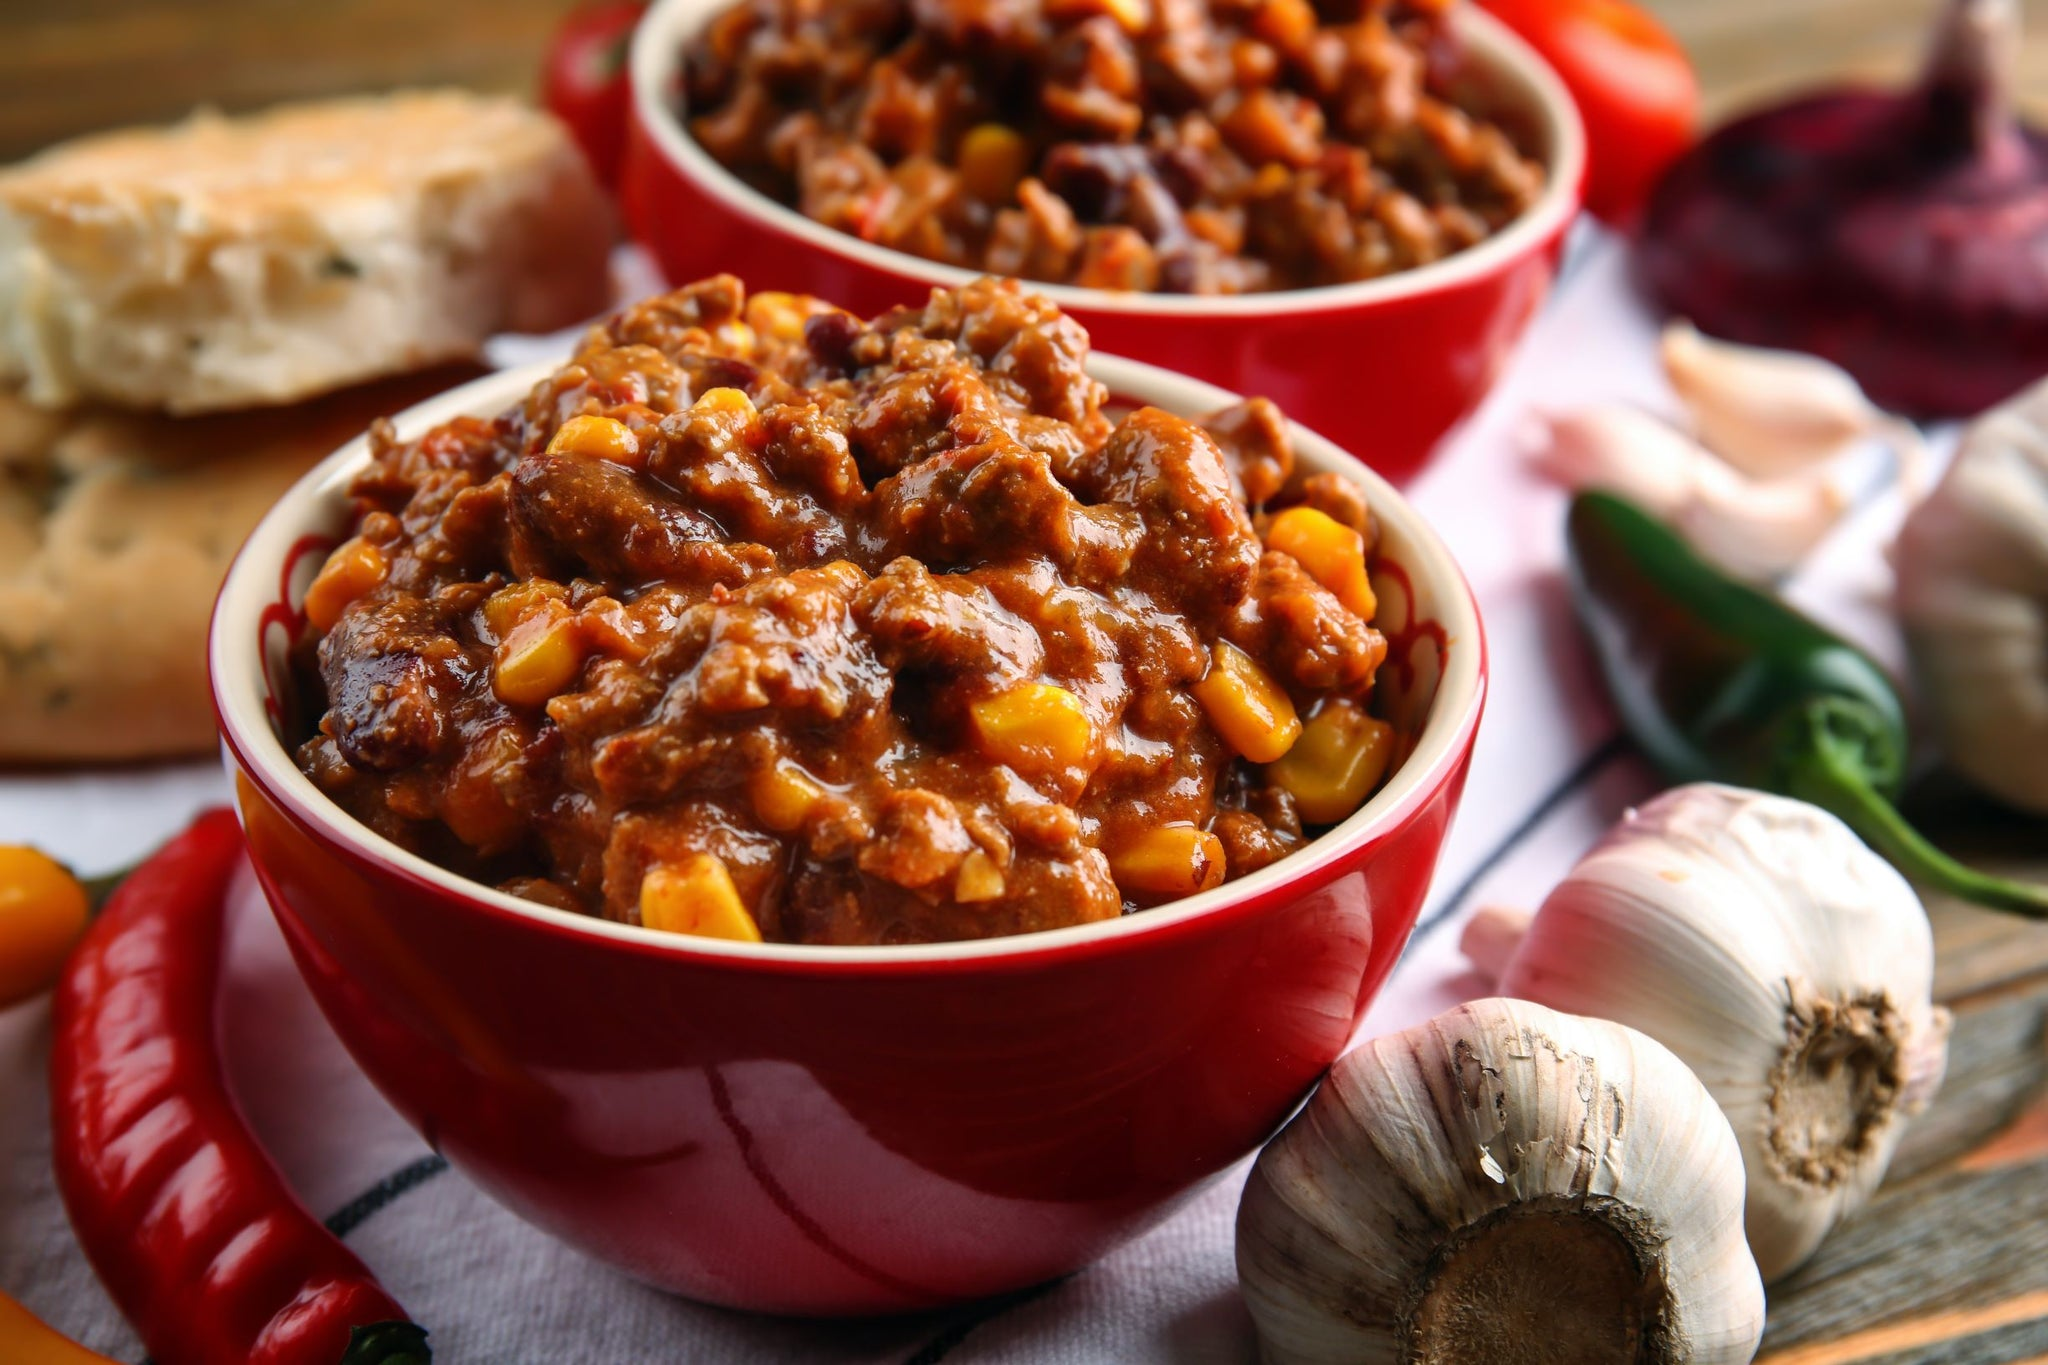 Campbell Chili con carne - 3 Pack [$3.96/lb]